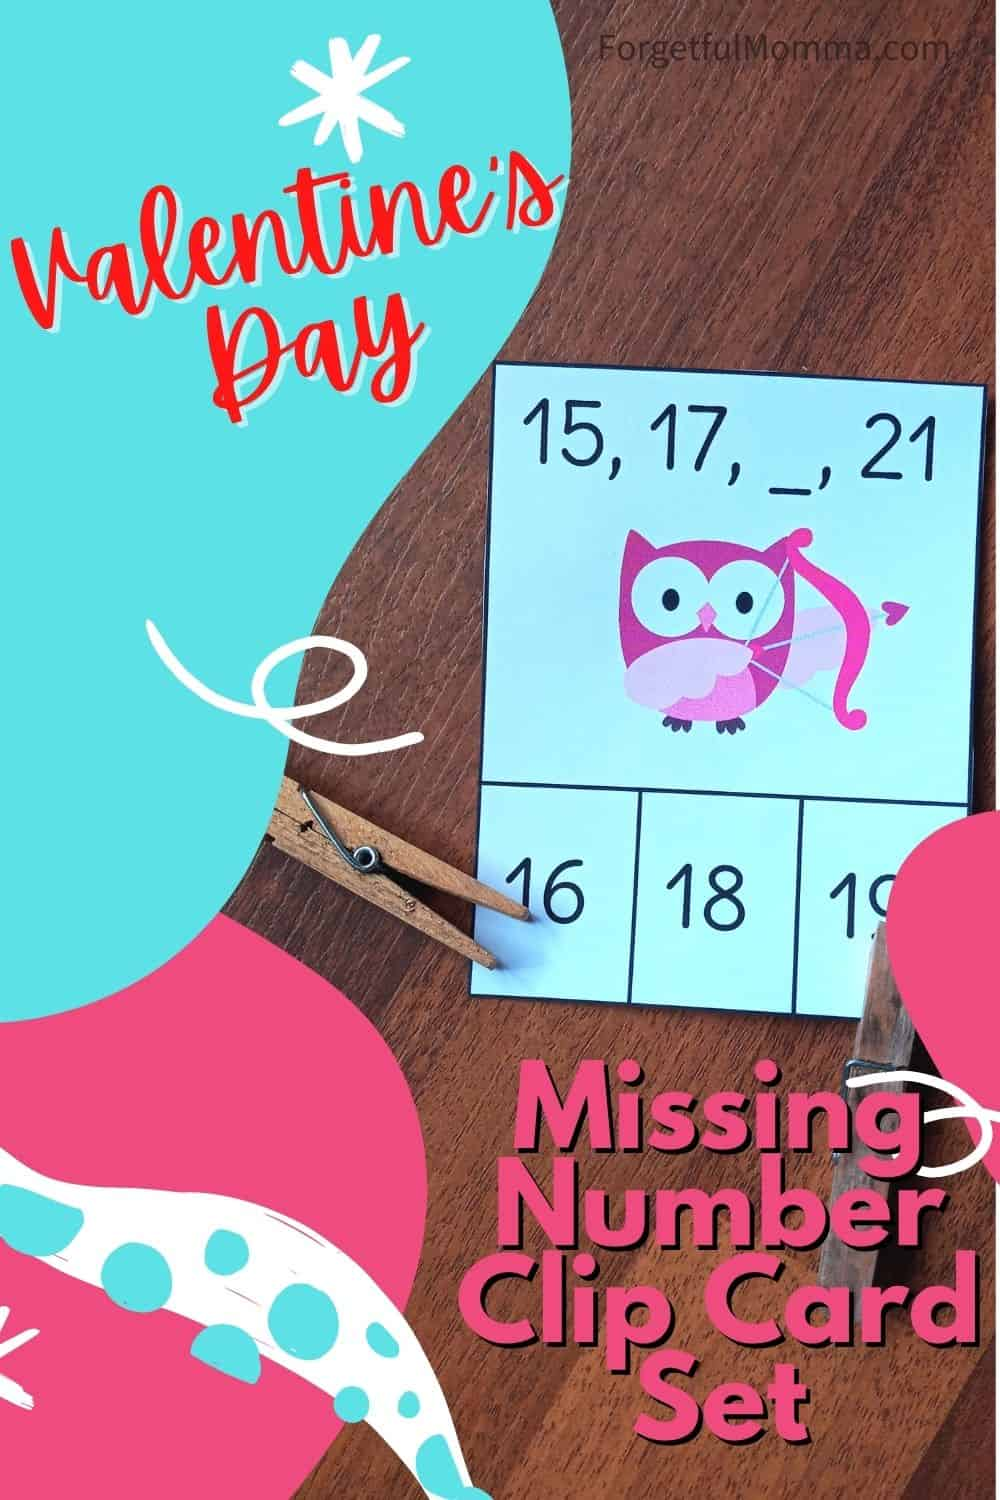 Valentine's Day Missing Number Clip Card Set - card with clothes pins - text overlay